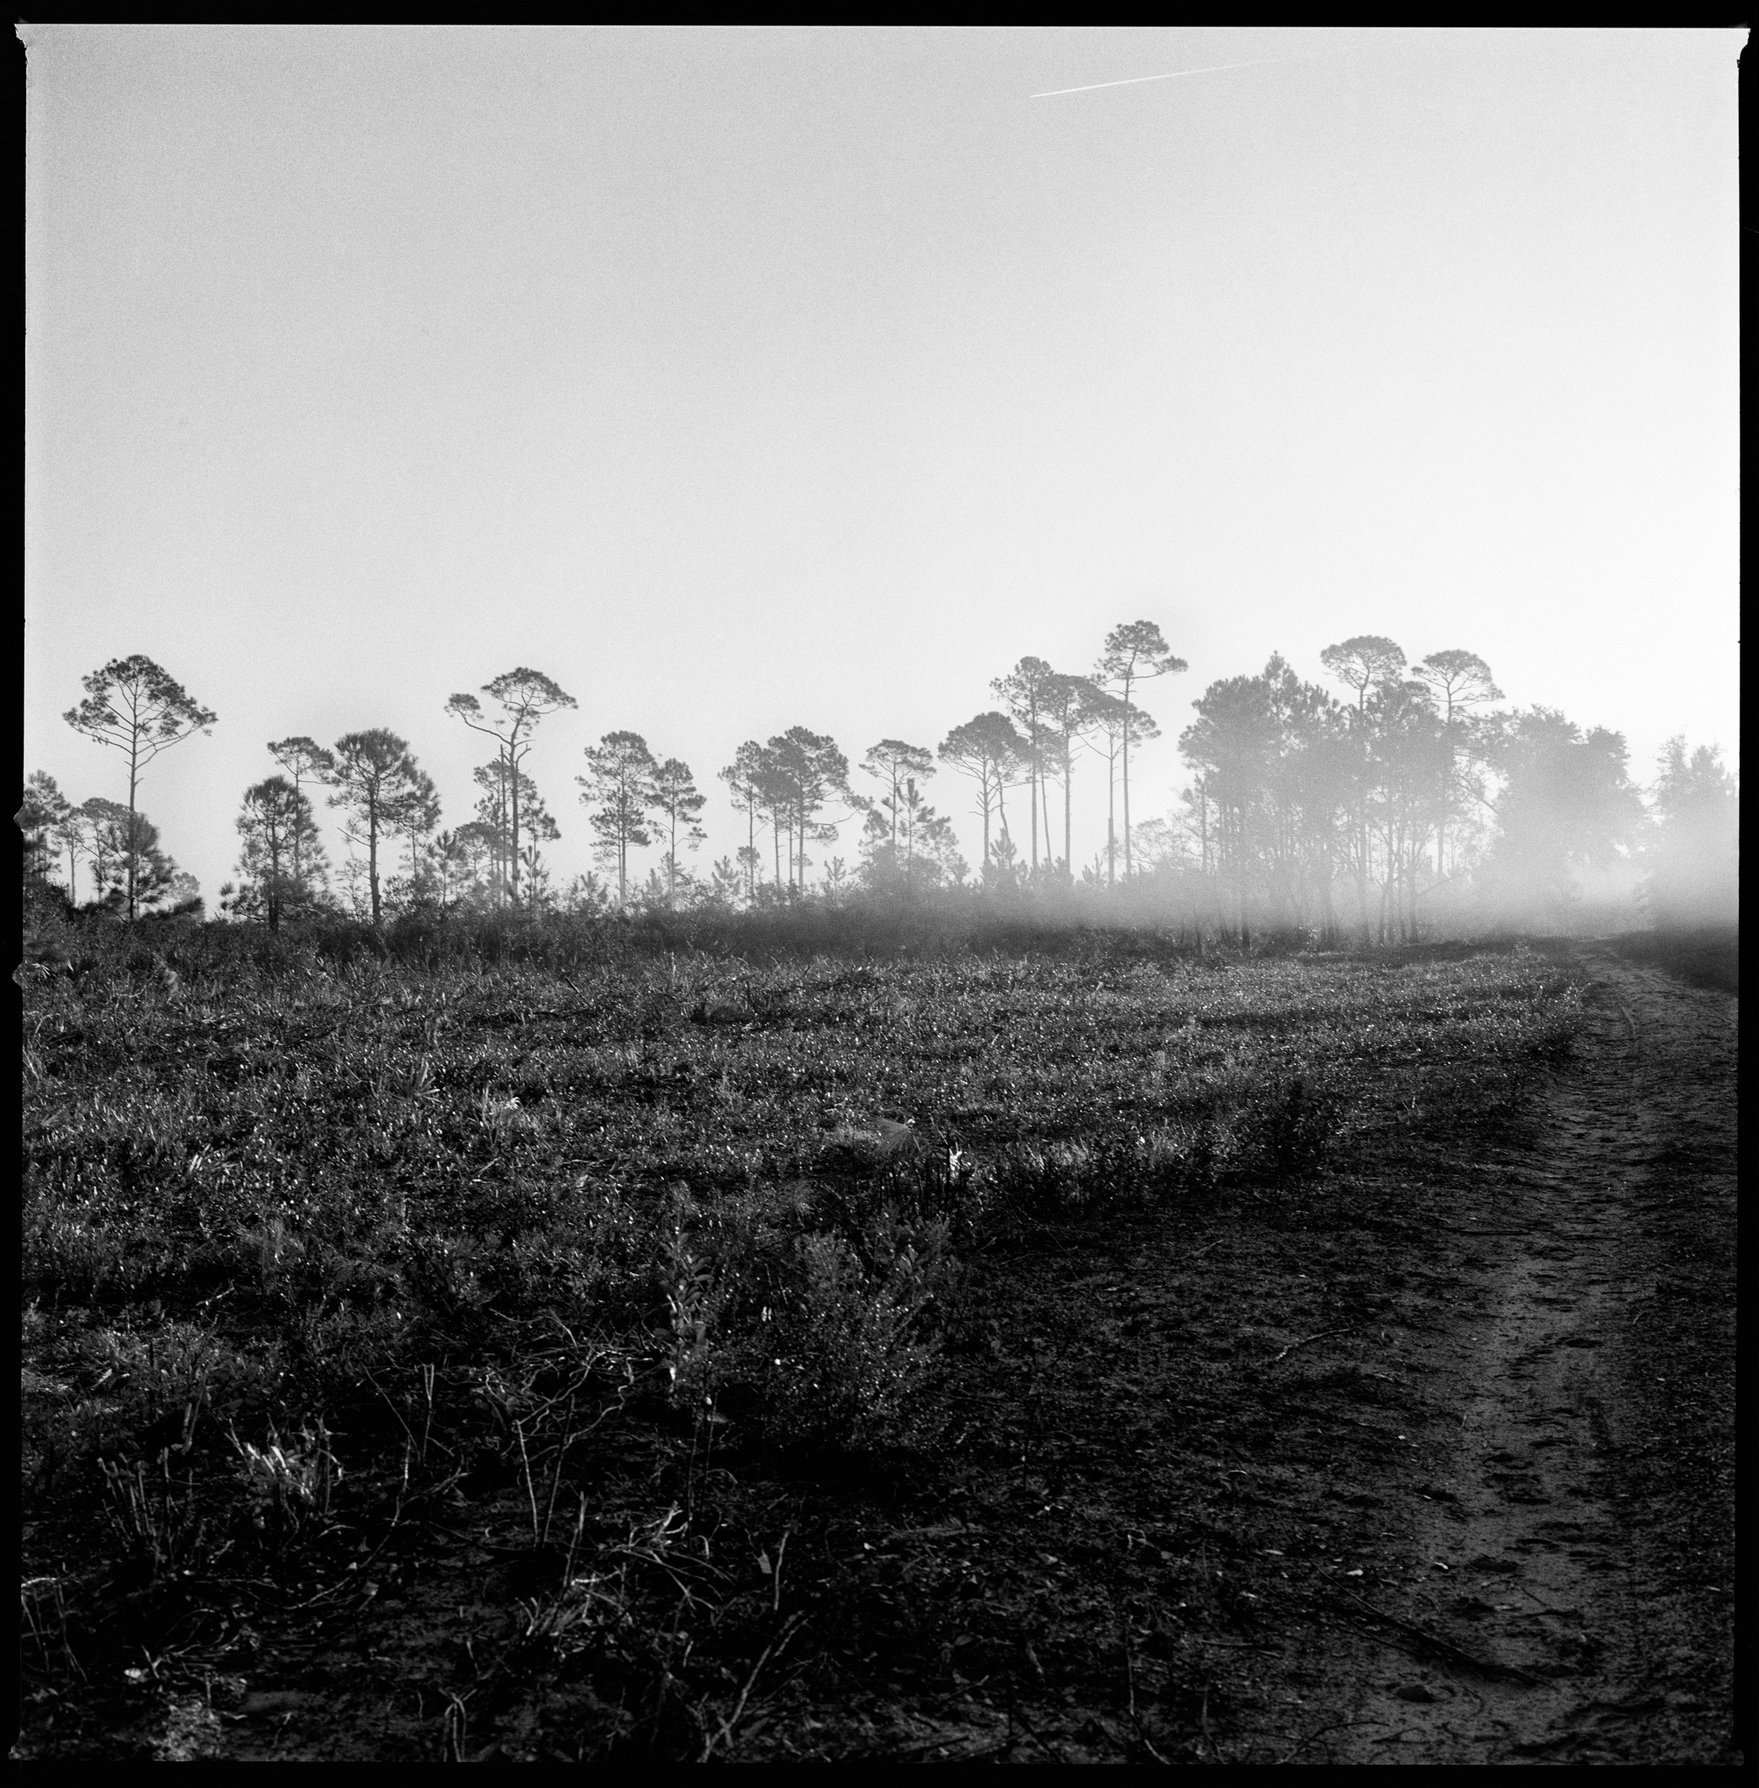 Longleaf Pines and Fog on Horizon, North Cut Road